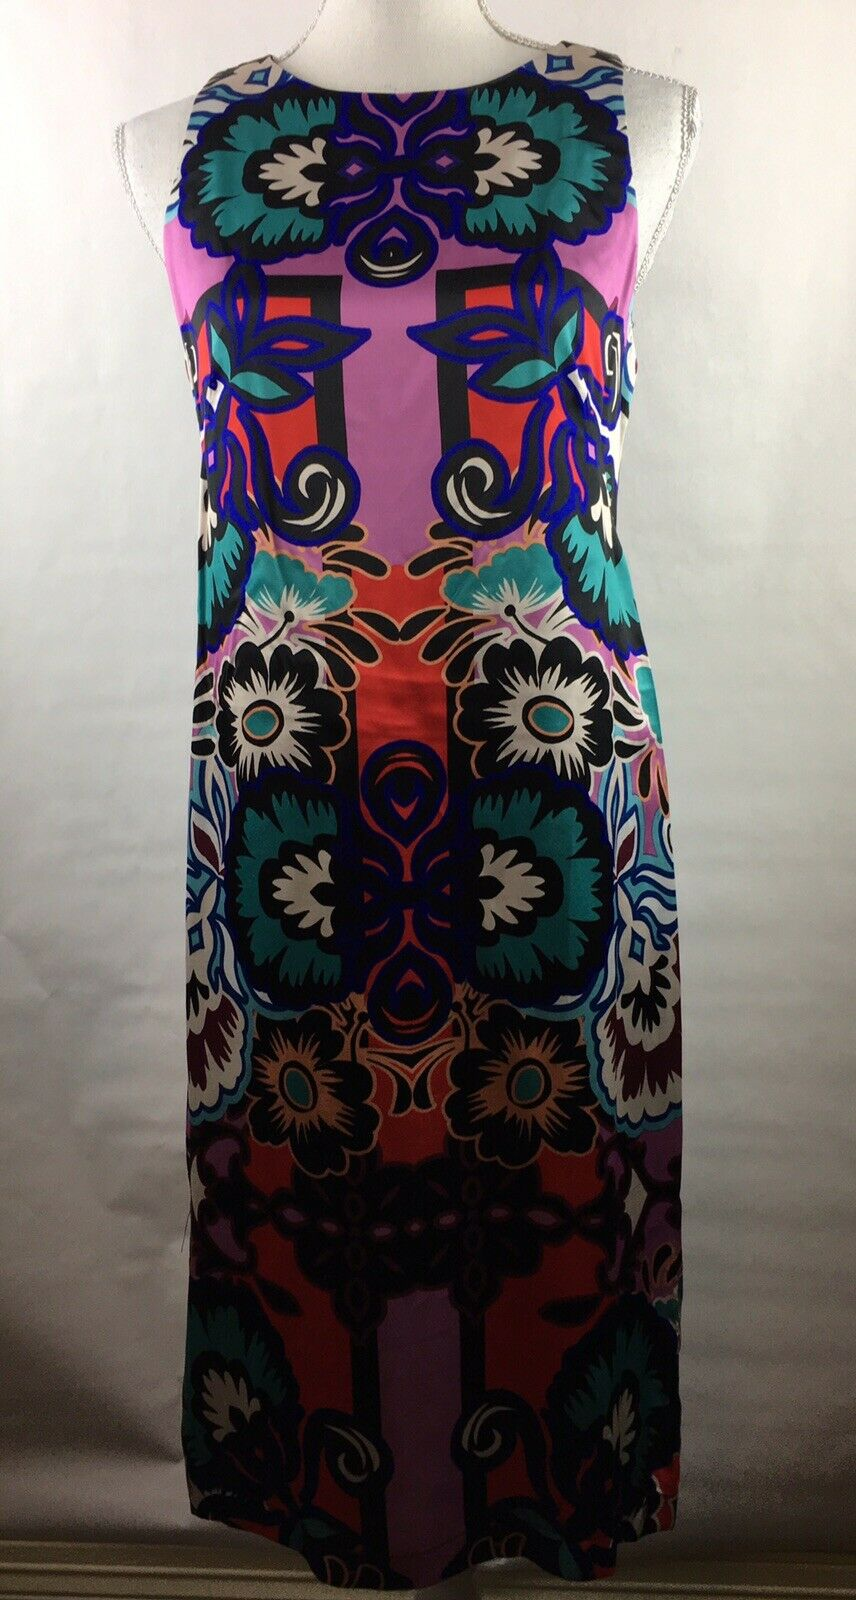 New With Tags Nanette Lepore Woherren Größe 4 Dress Multi Farbe Floral Sleeveless